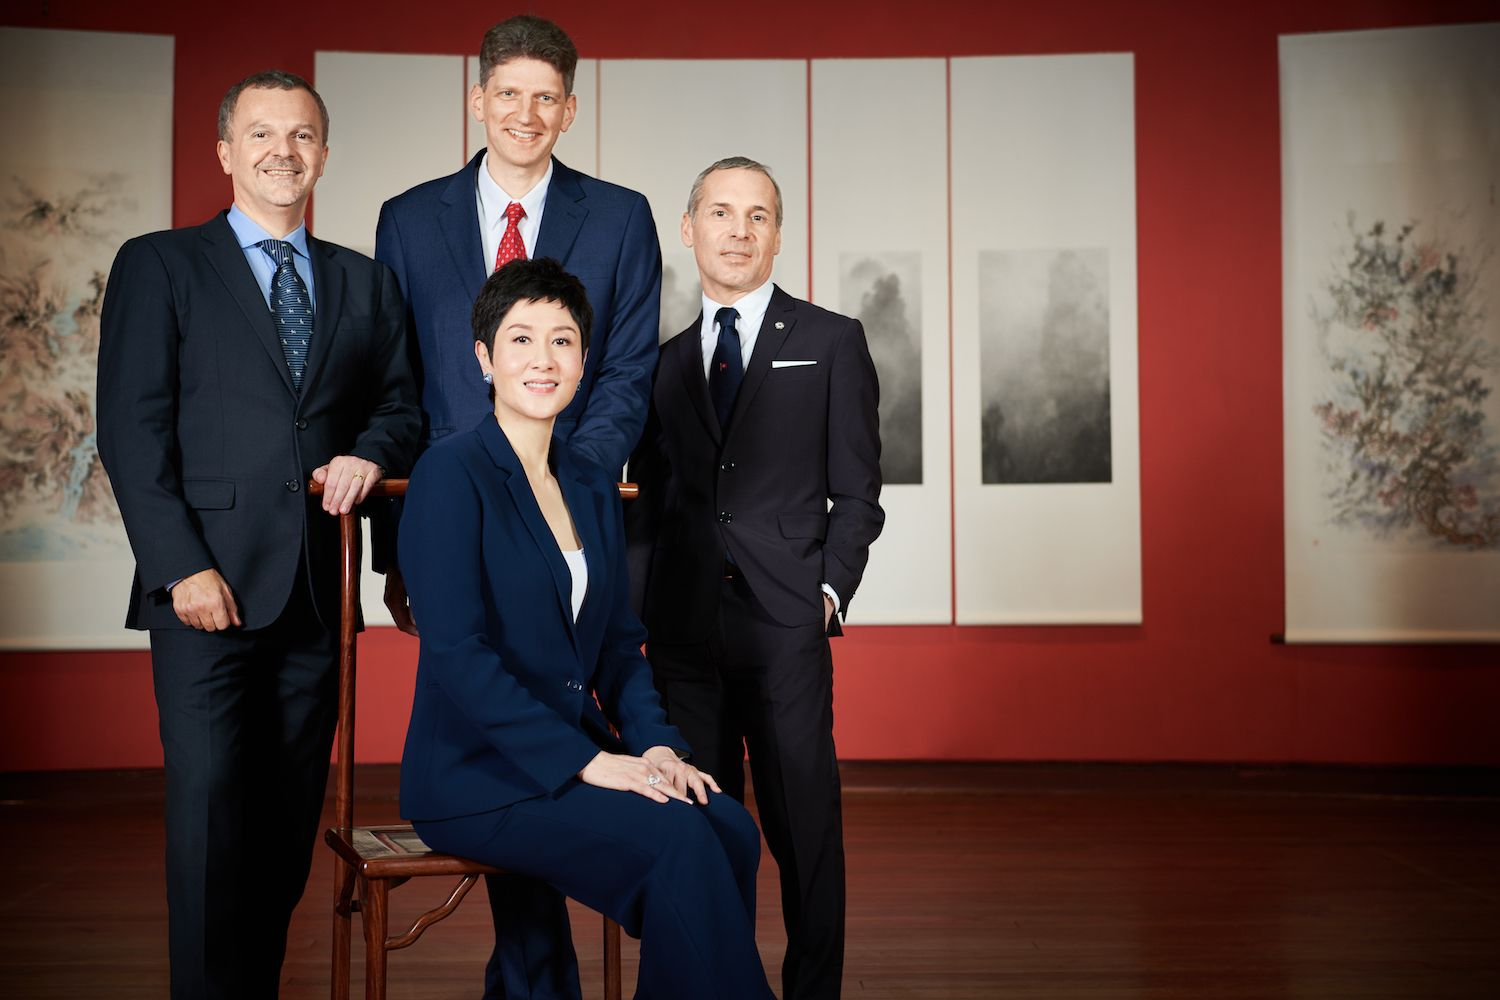 Michelle Ong And The Marco Polo Society Bring Renaissance Masterpieces To Hong Kong